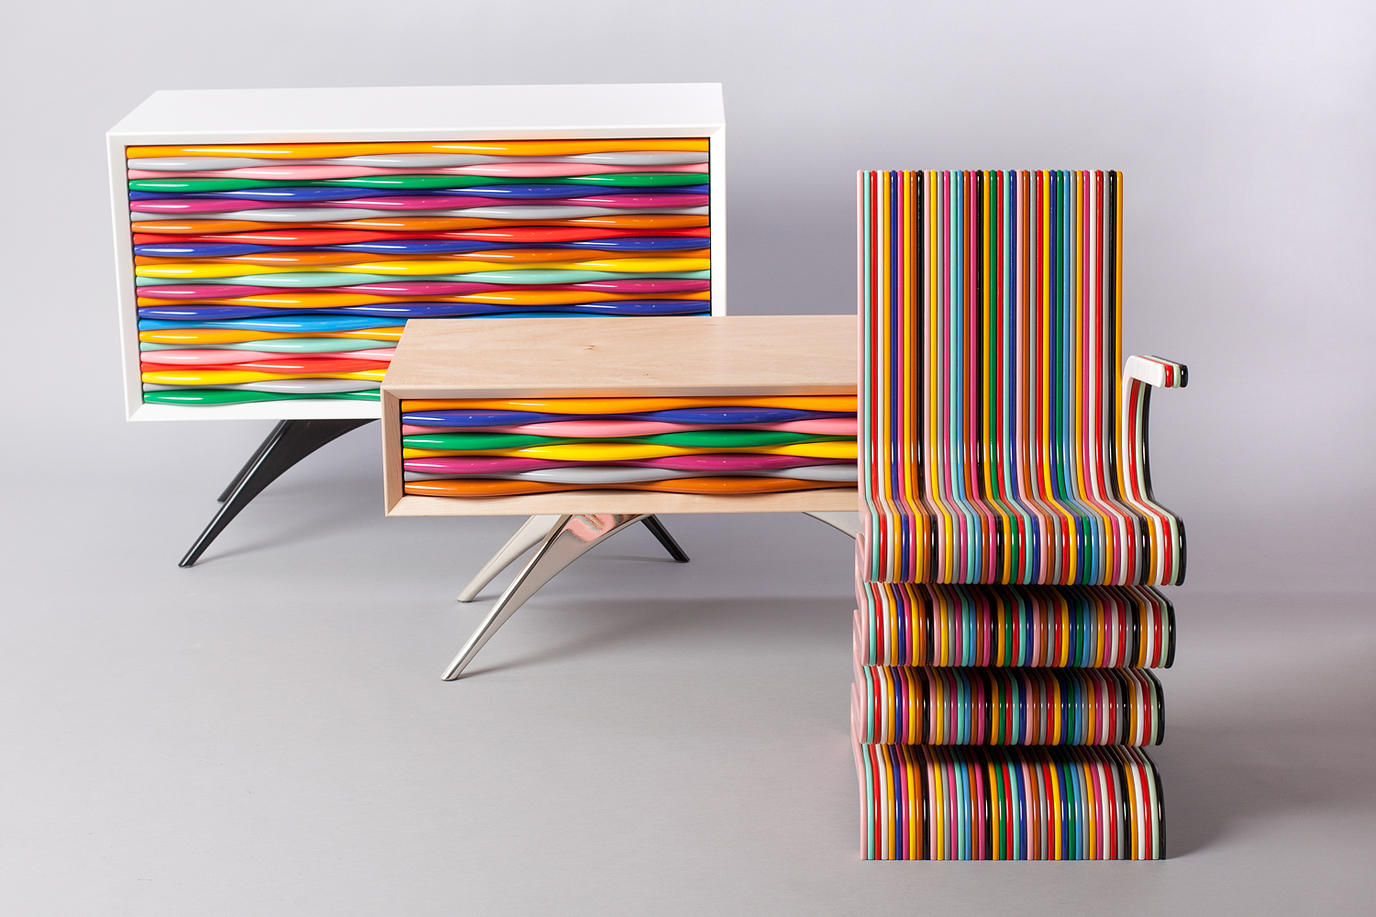 Design pop mobili multicolor di anthony hartley for Imitazioni mobili design